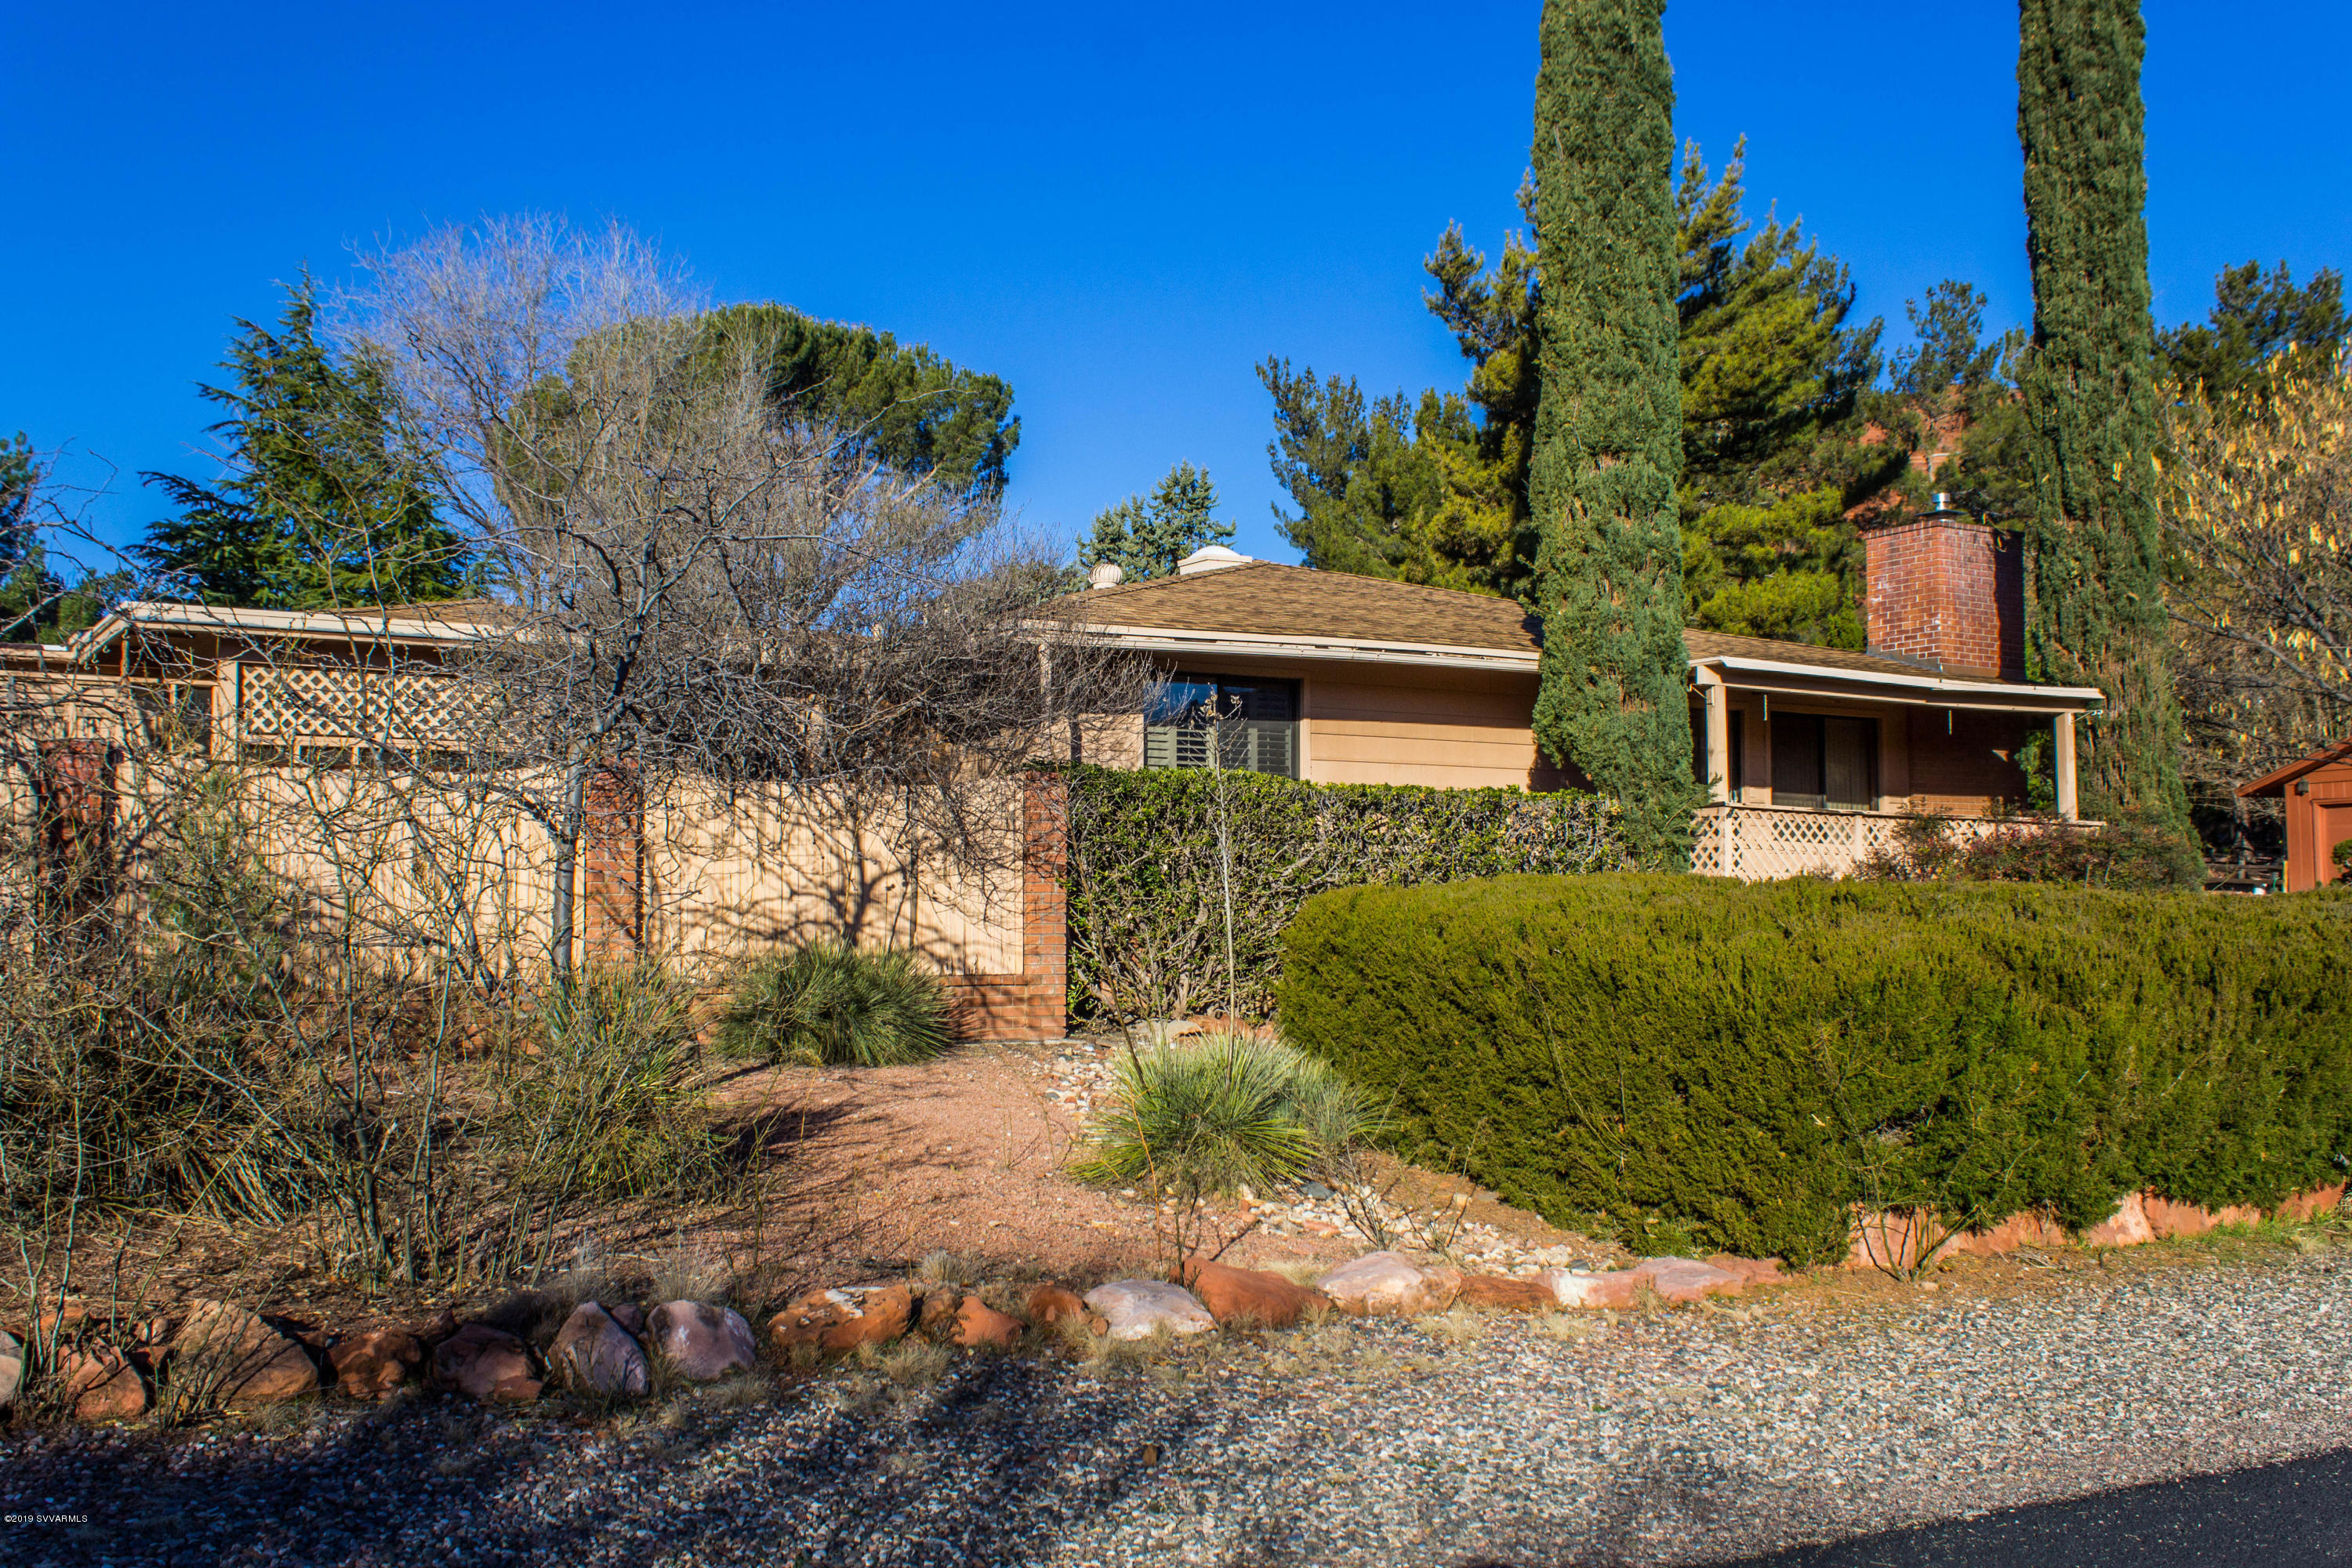 135 Flaming Arrow Way Sedona, AZ 86336